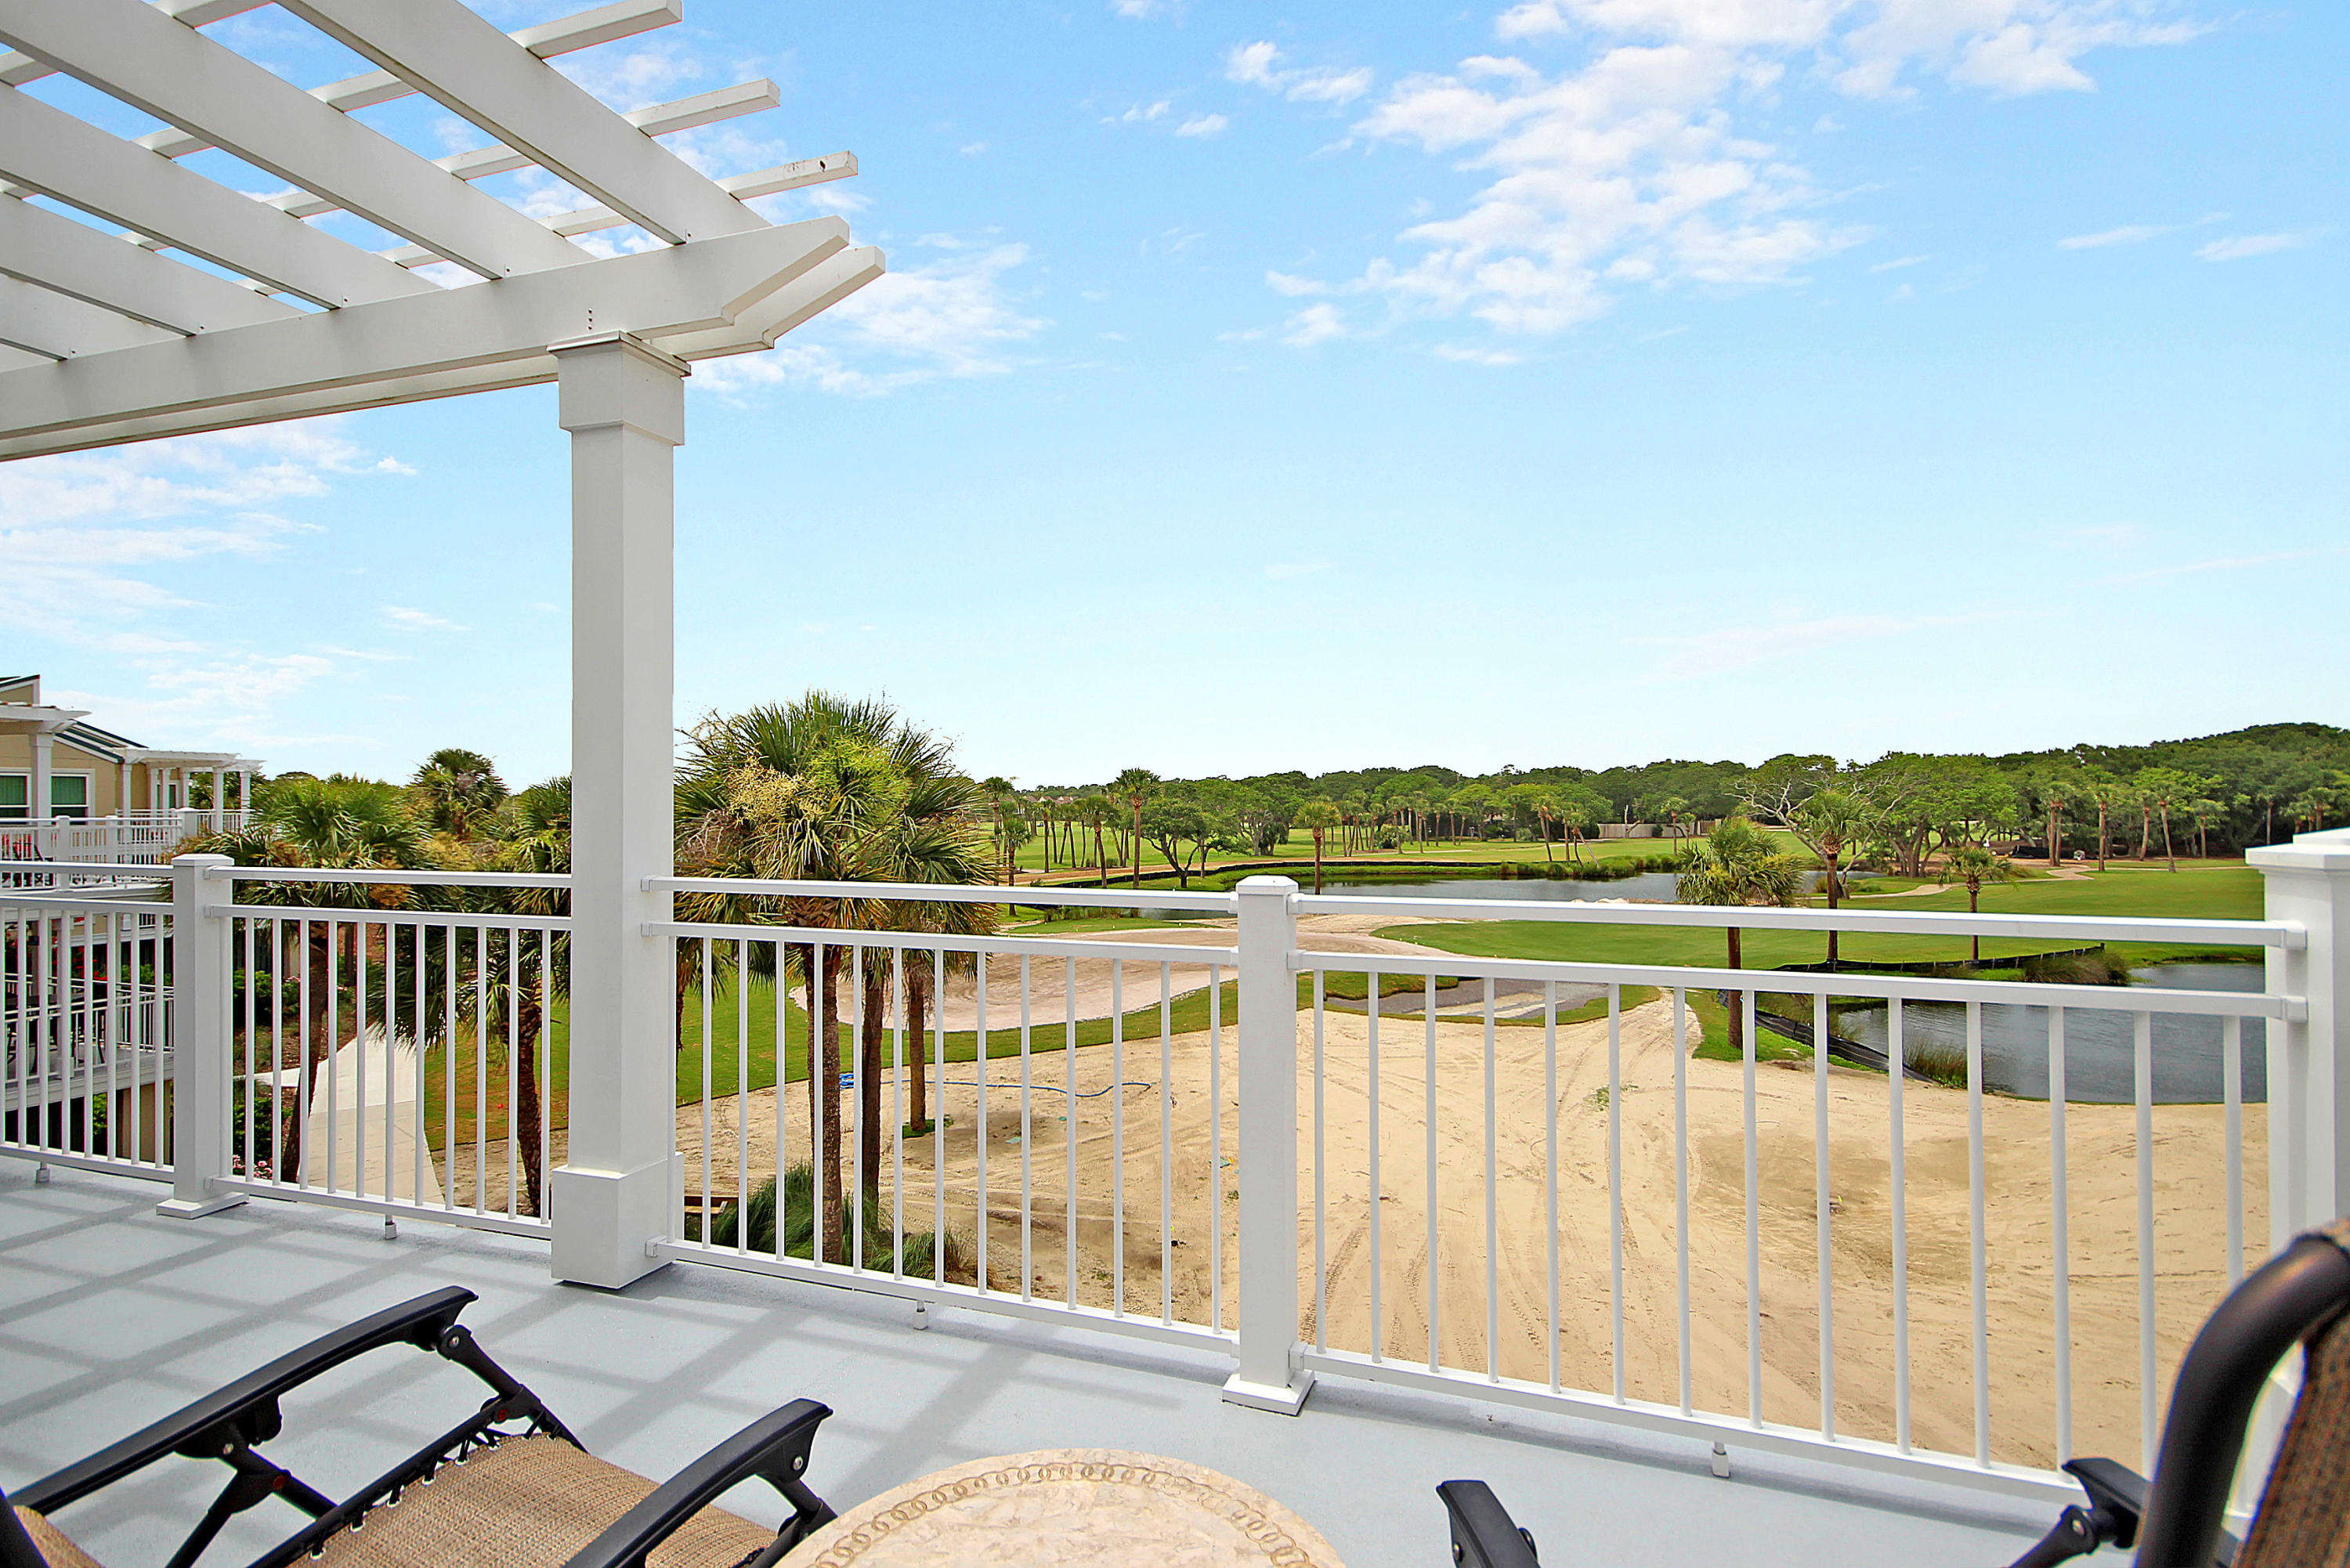 Atrium Villas Homes For Sale - 2912 Atrium Villa, Seabrook Island, SC - 17